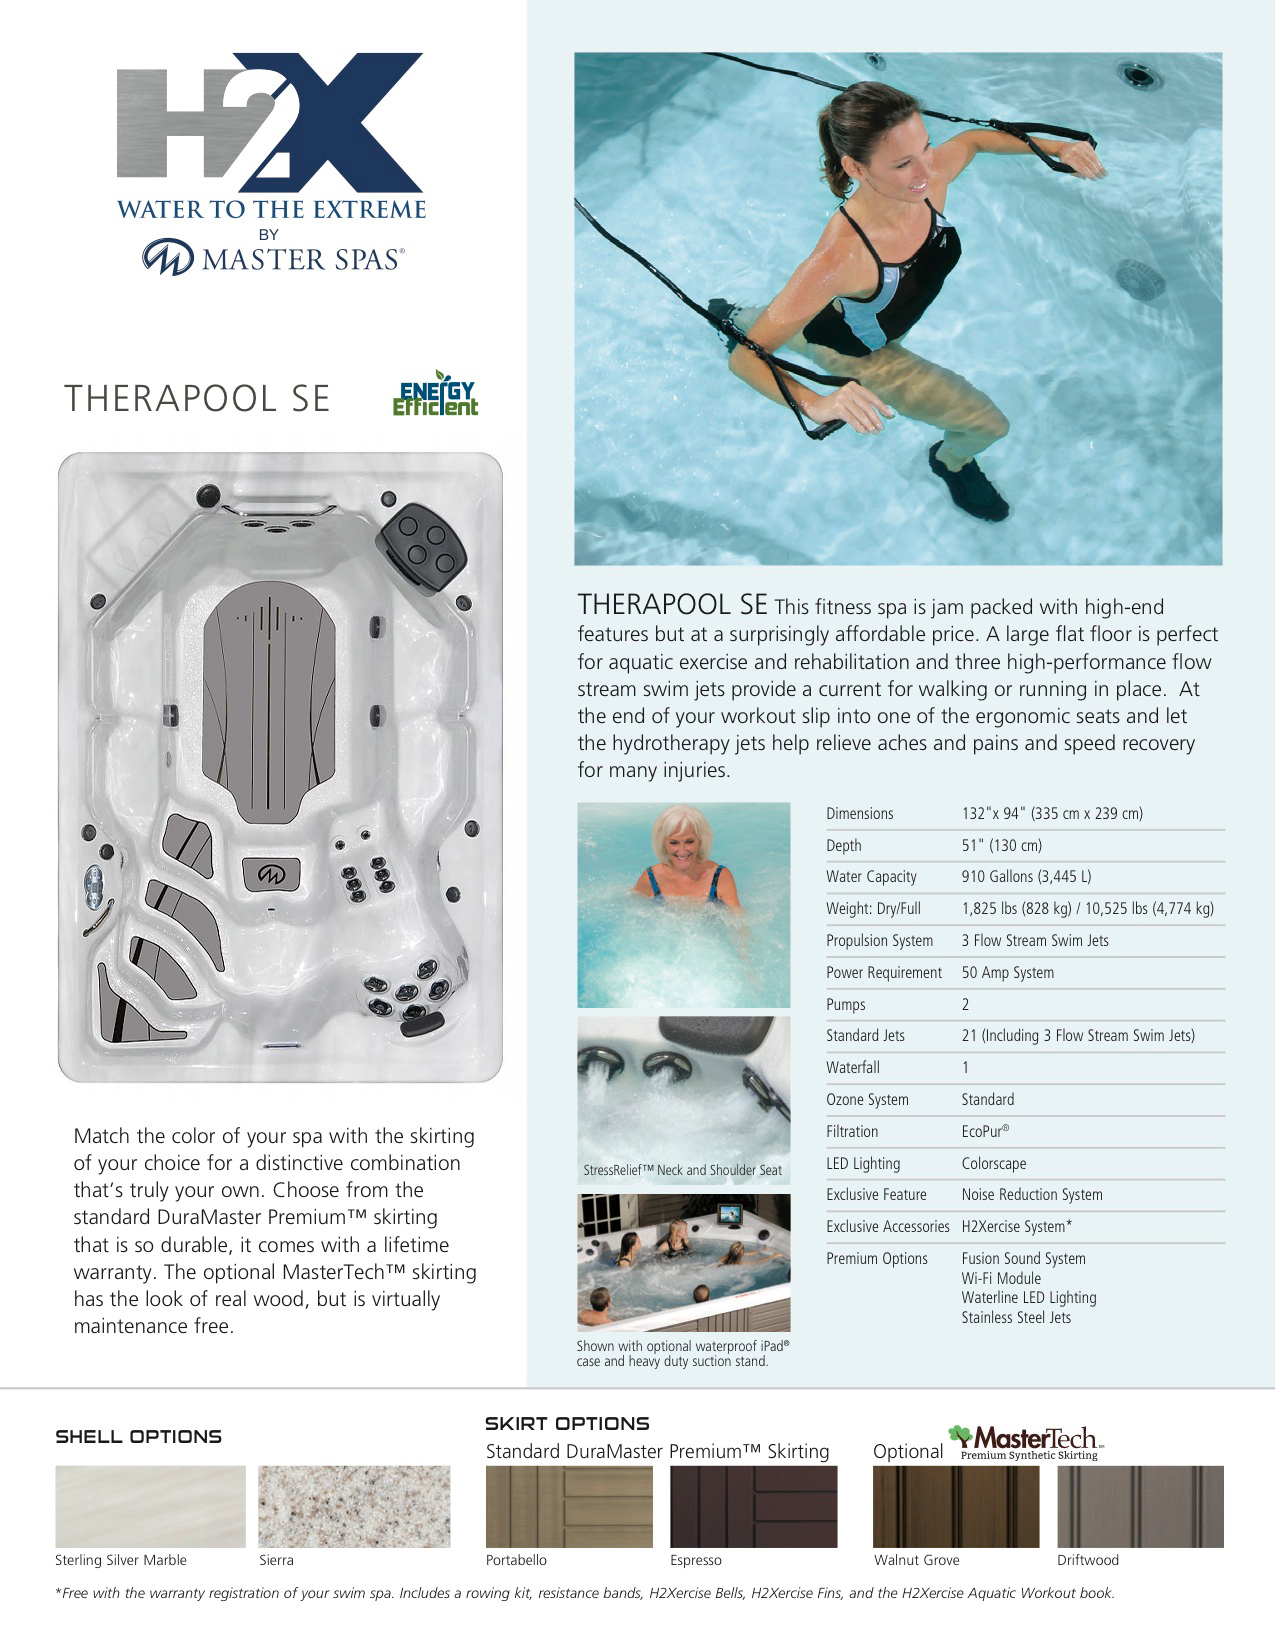 H2X Trainer Therapool SE Swim Spa